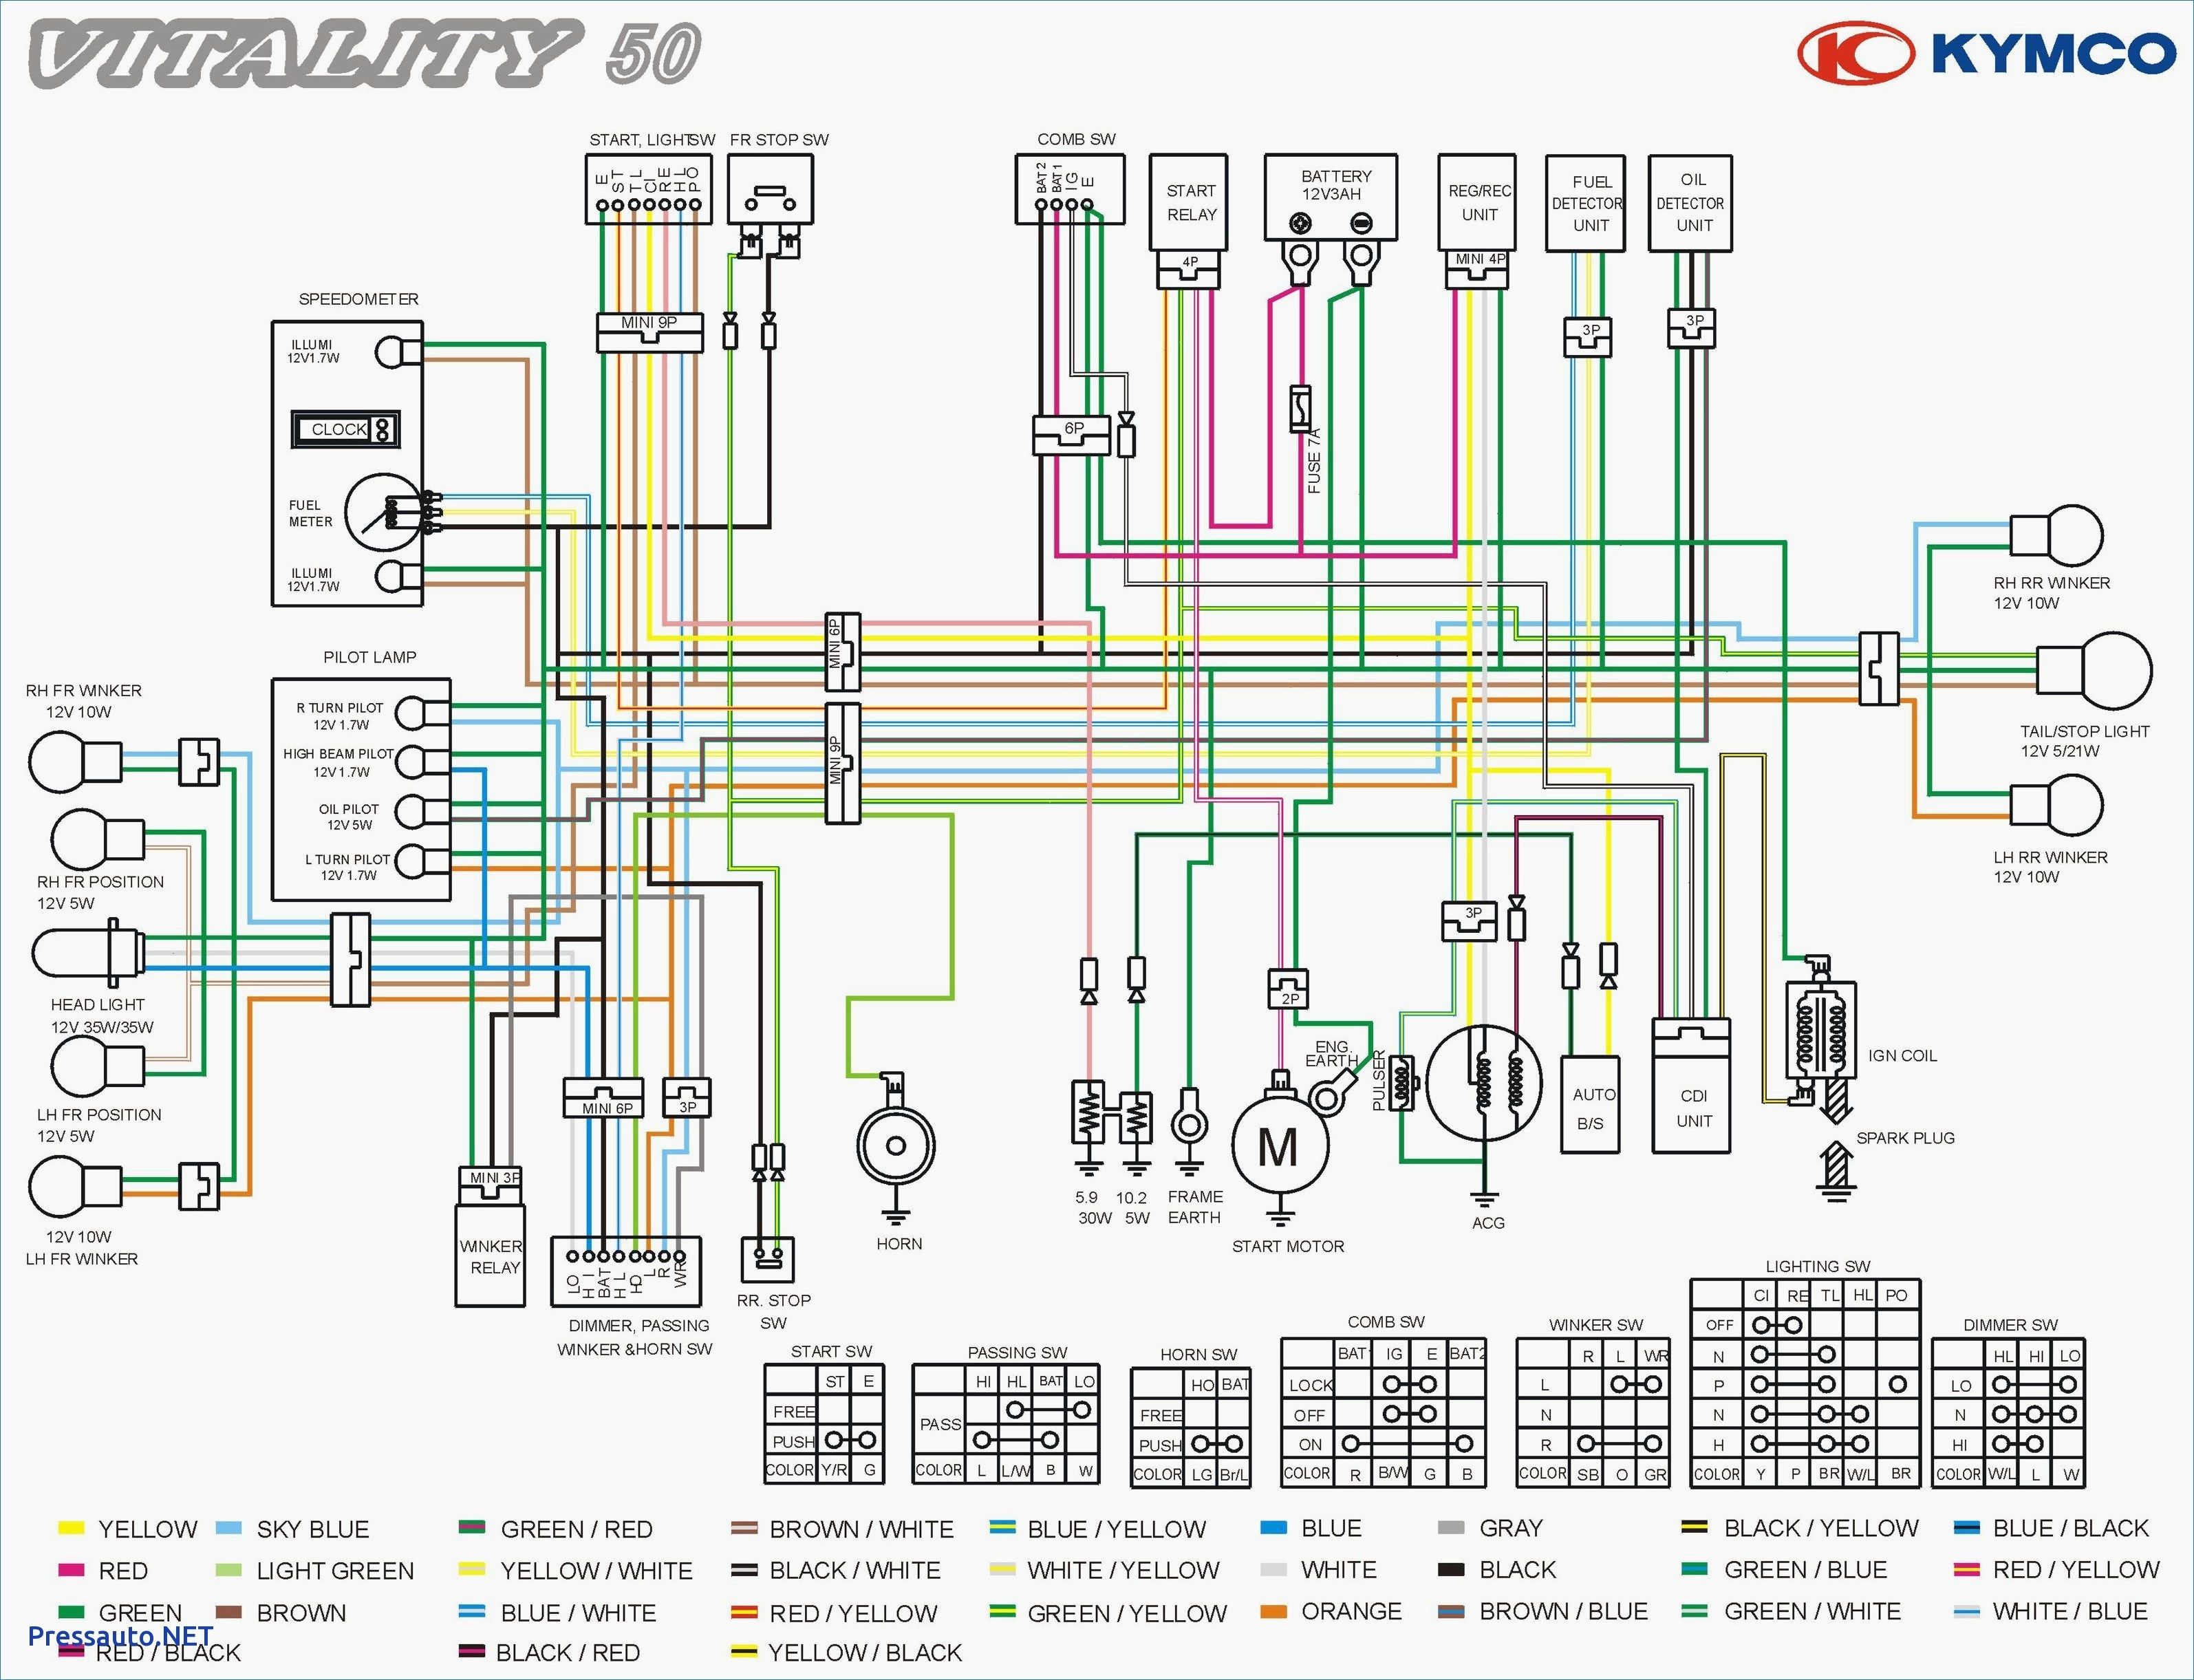 389935b766409d5e29c31fa216d46e65 Xrm Electrical Wiring Diagram on aeotec heavy duty, electric motor, kazuma lacoste, light switch, polaris atv, patch panel, phone block, for aprilaire model,